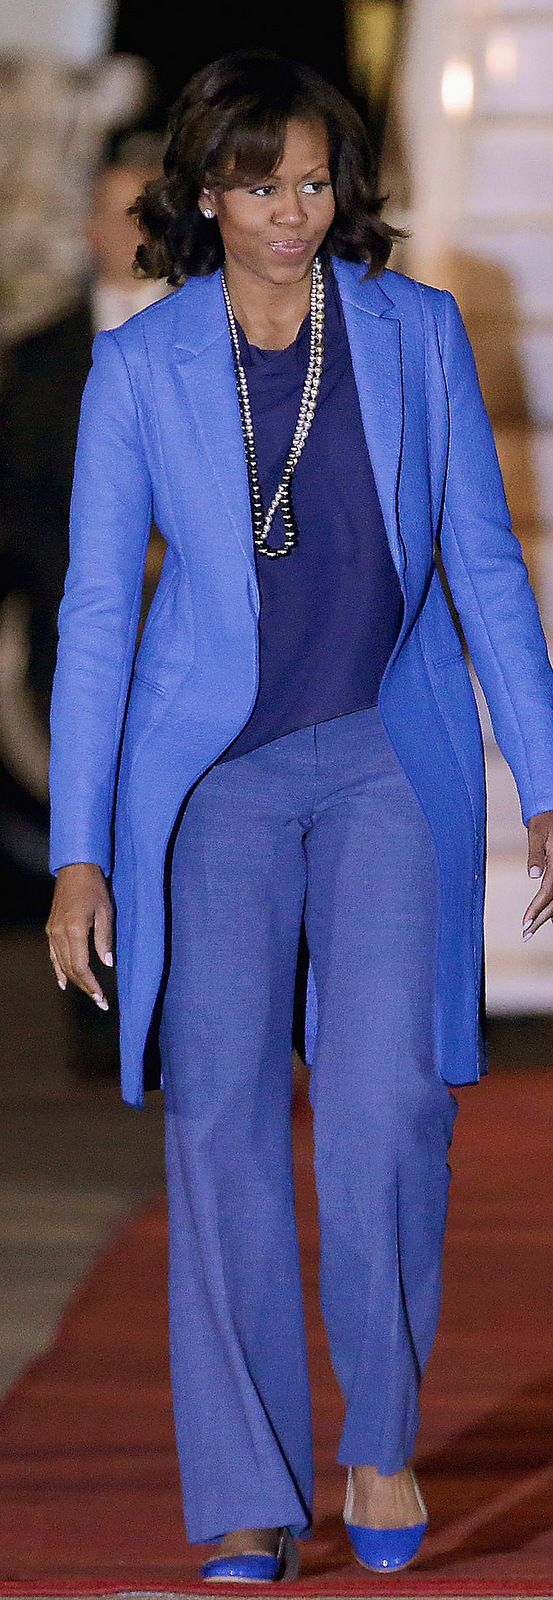 Michelle Obama - often wears coloured shoes which is unusual but fabulous.